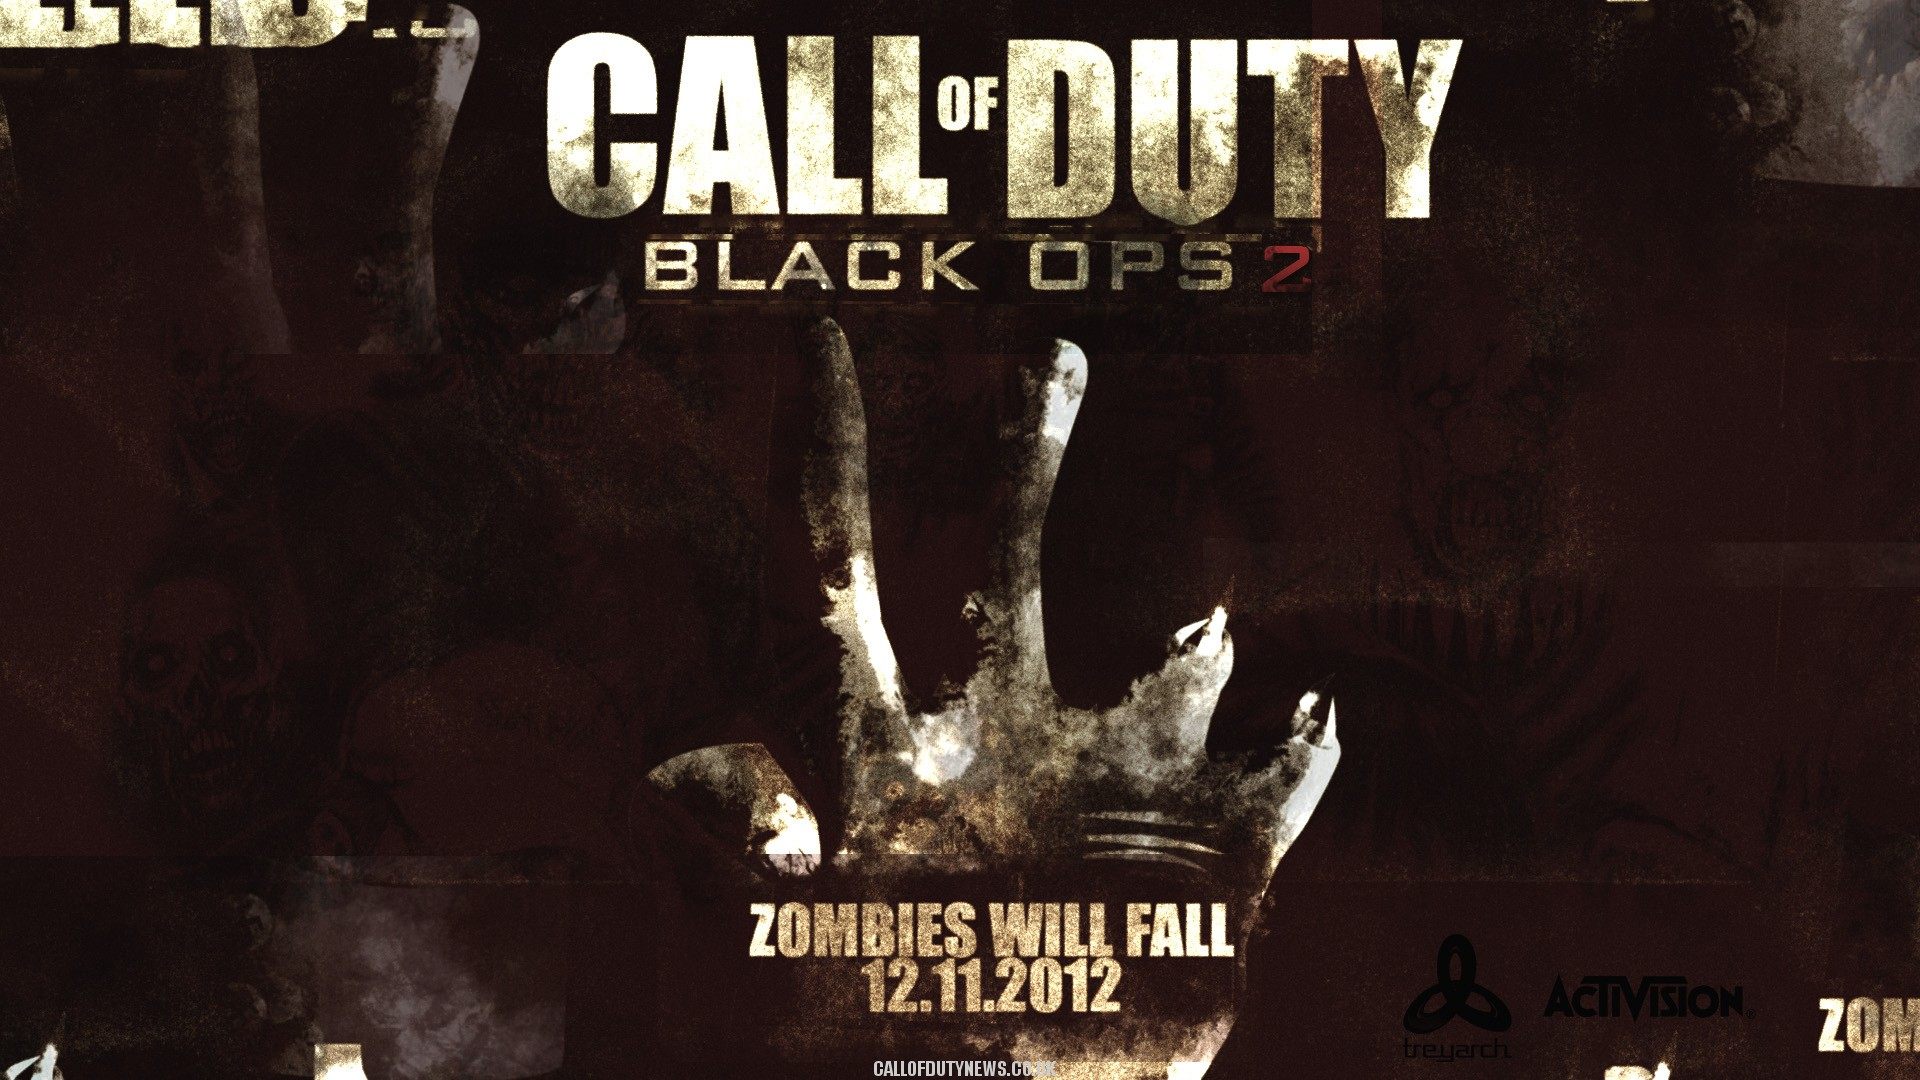 black ops 2 zombies wallpaperWallpapers Call of Duty News Blog 1920x1080